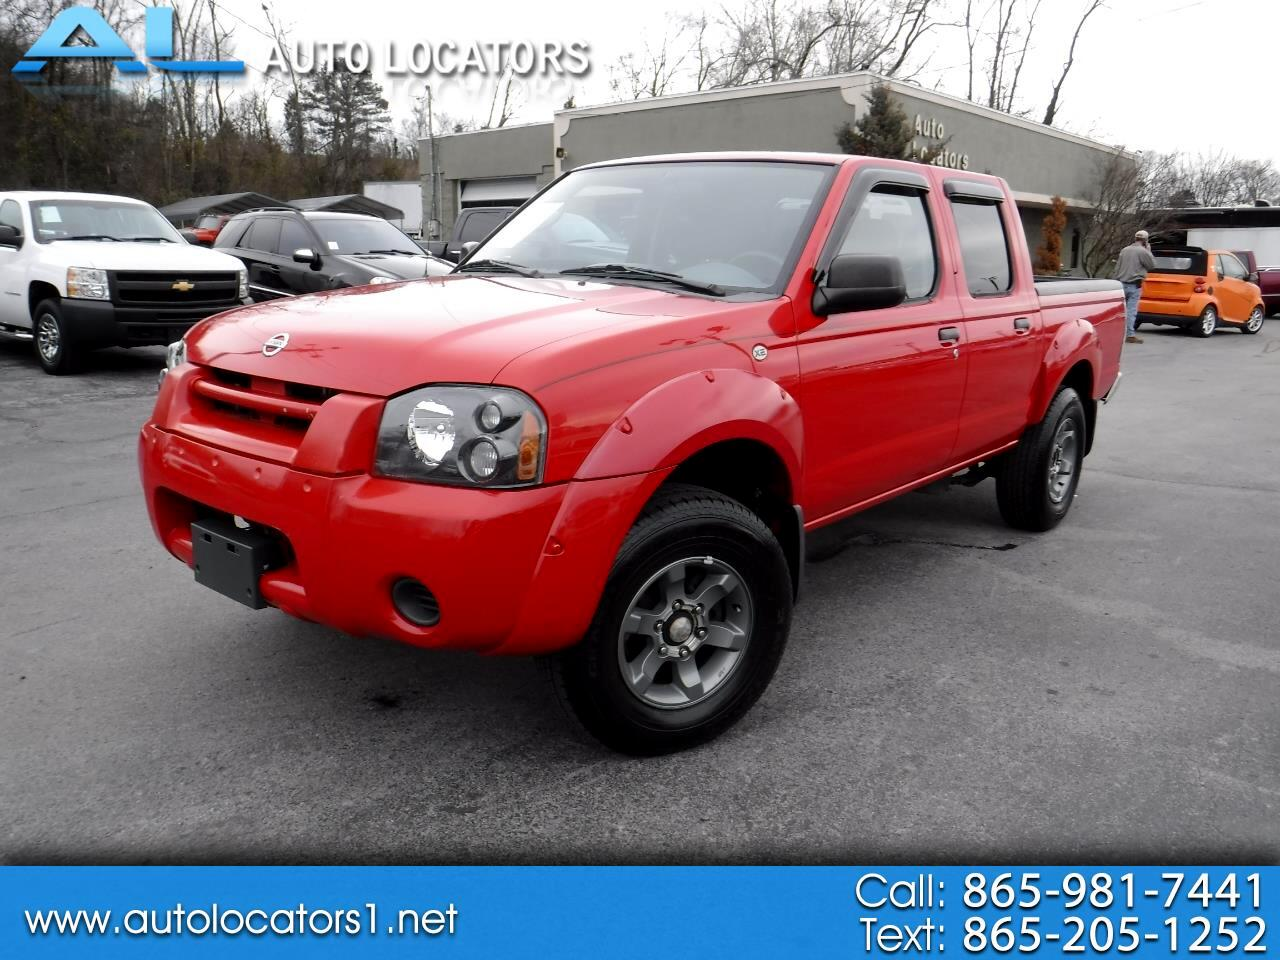 2004 Nissan Frontier XE Crew Cab V6 Auto Std Bed